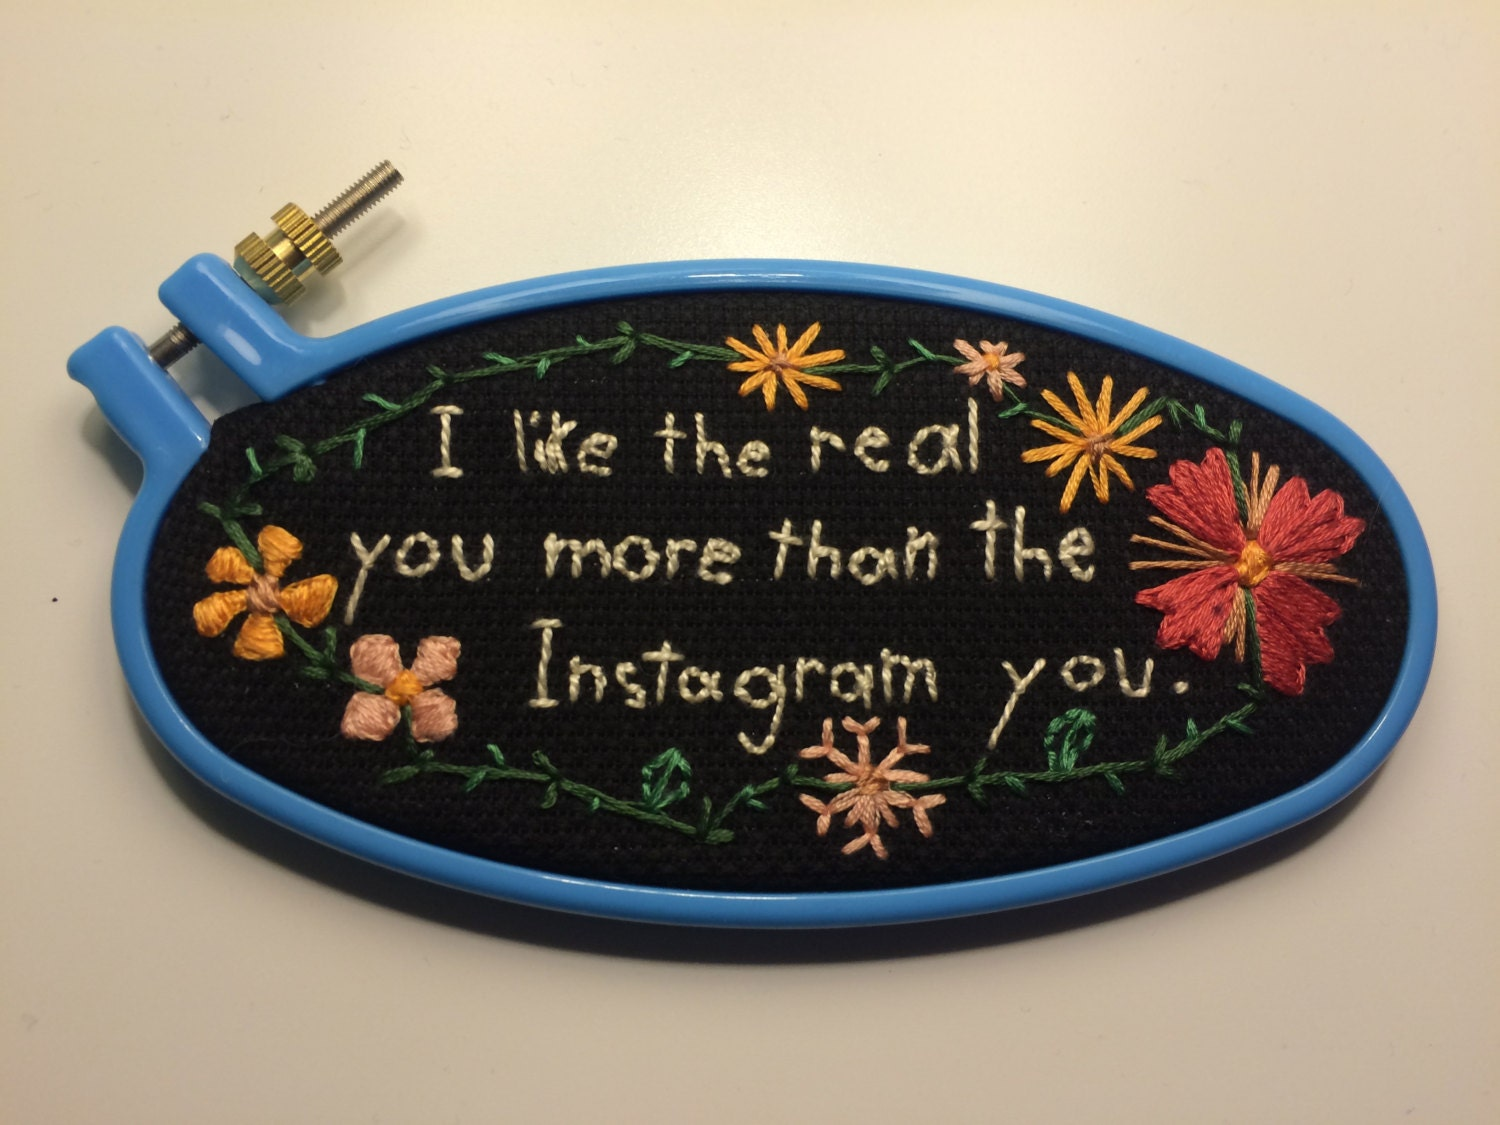 Morley embroidery hoop art by sabinathehuman on etsy